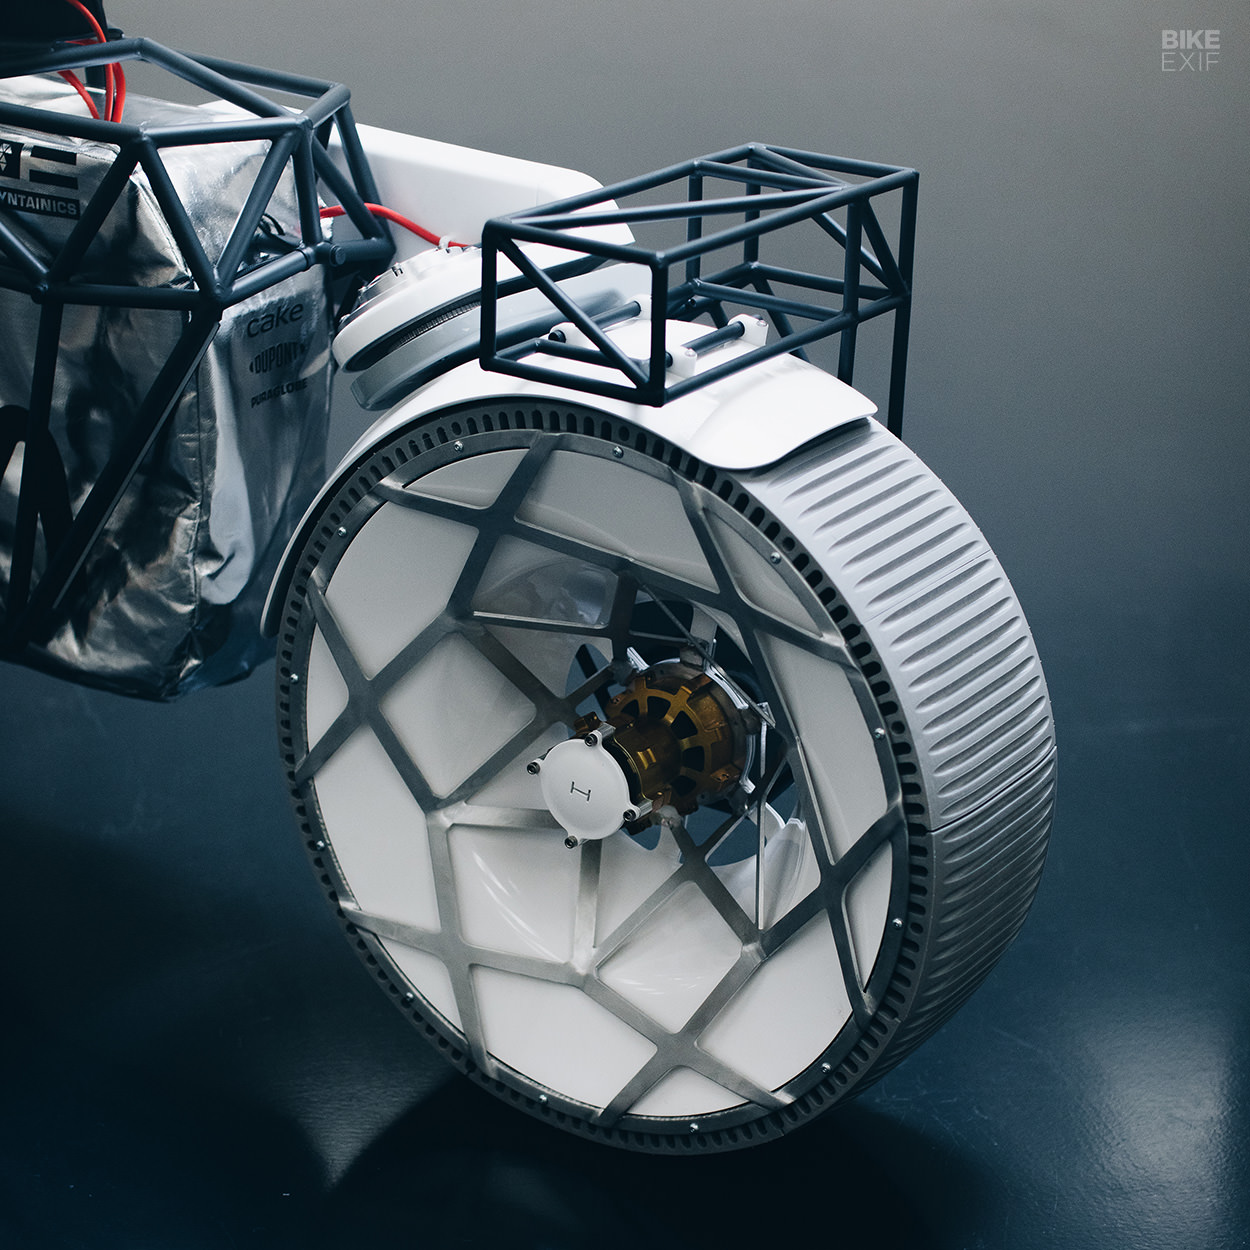 The Tardigrade moon rover motorcycle by Hookie Co.